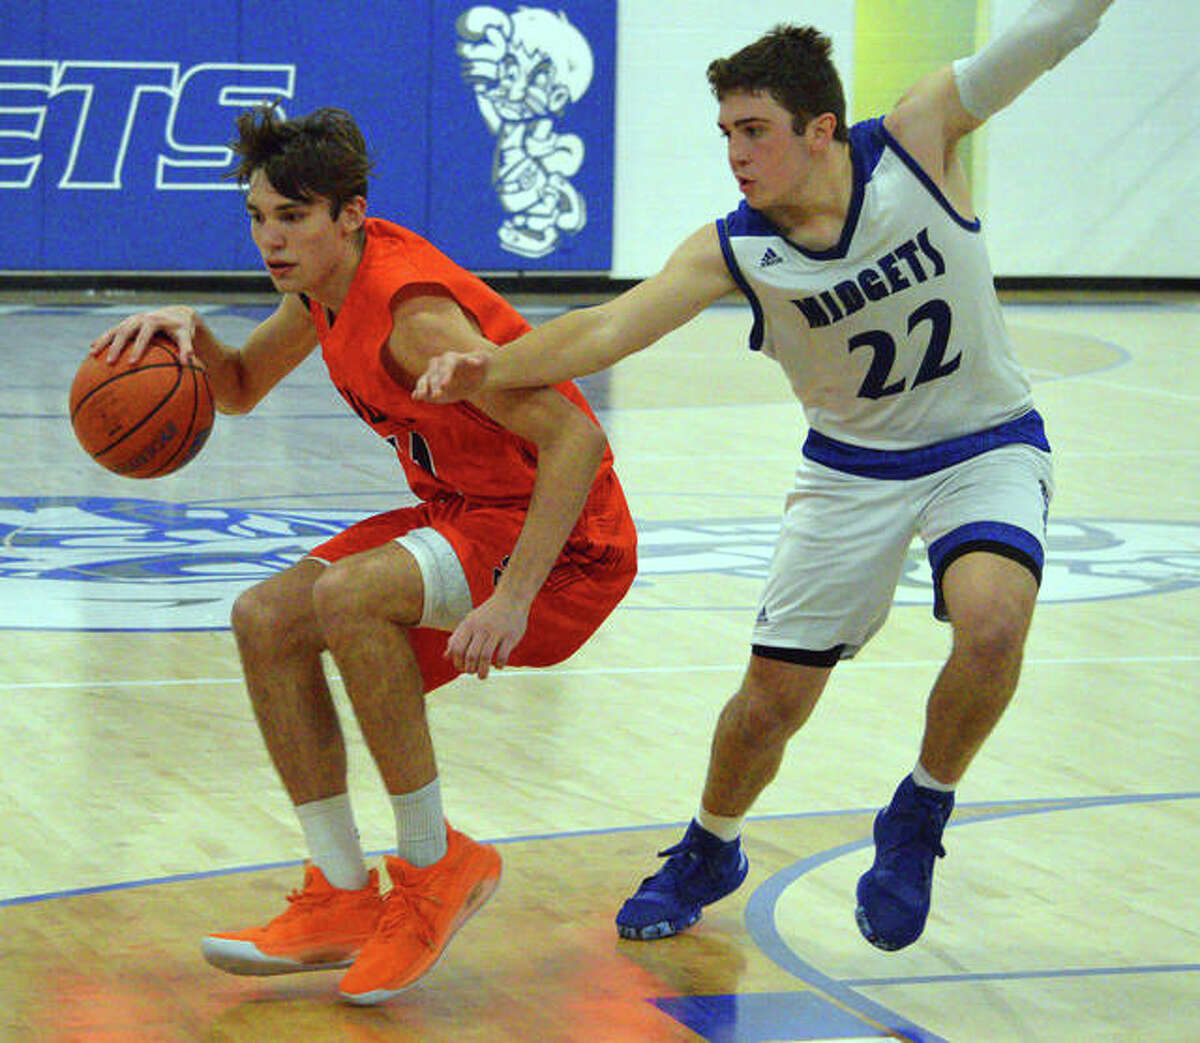 Edwardsville's Brennan Weller, left, tries to dribble past Freeburg's Griffin Range during Saturday's game. Freeburg is among five new non-conference opponents for the Tigers last season.